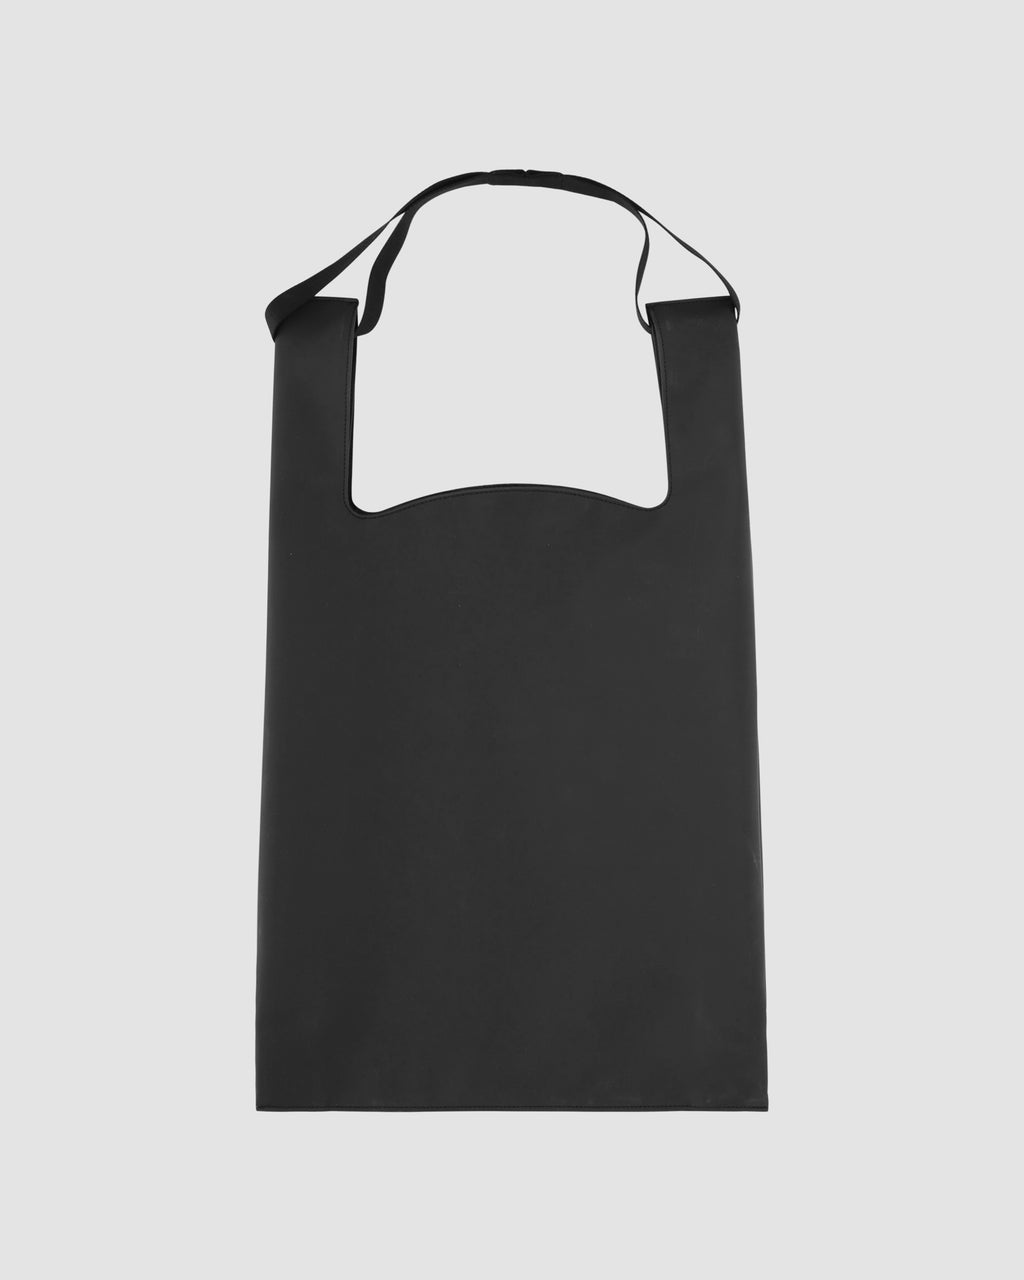 1017 ALYX 9SM | SHOPPING BAG | Bag | Accessories, Bag Online, Bags, F19, Man, Woman